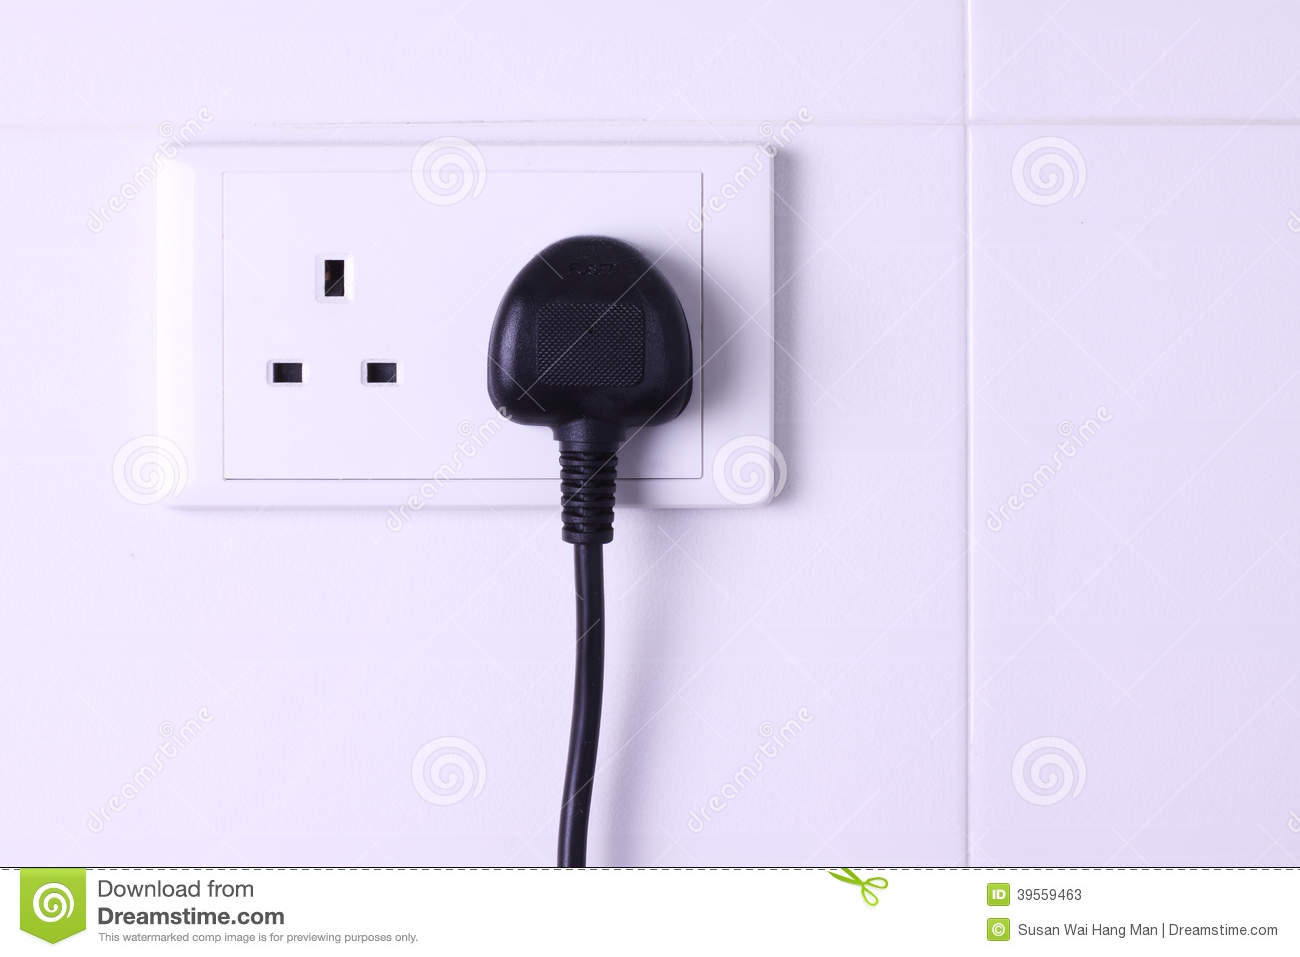 Plugged In Socket Against White Tiles Background Stock